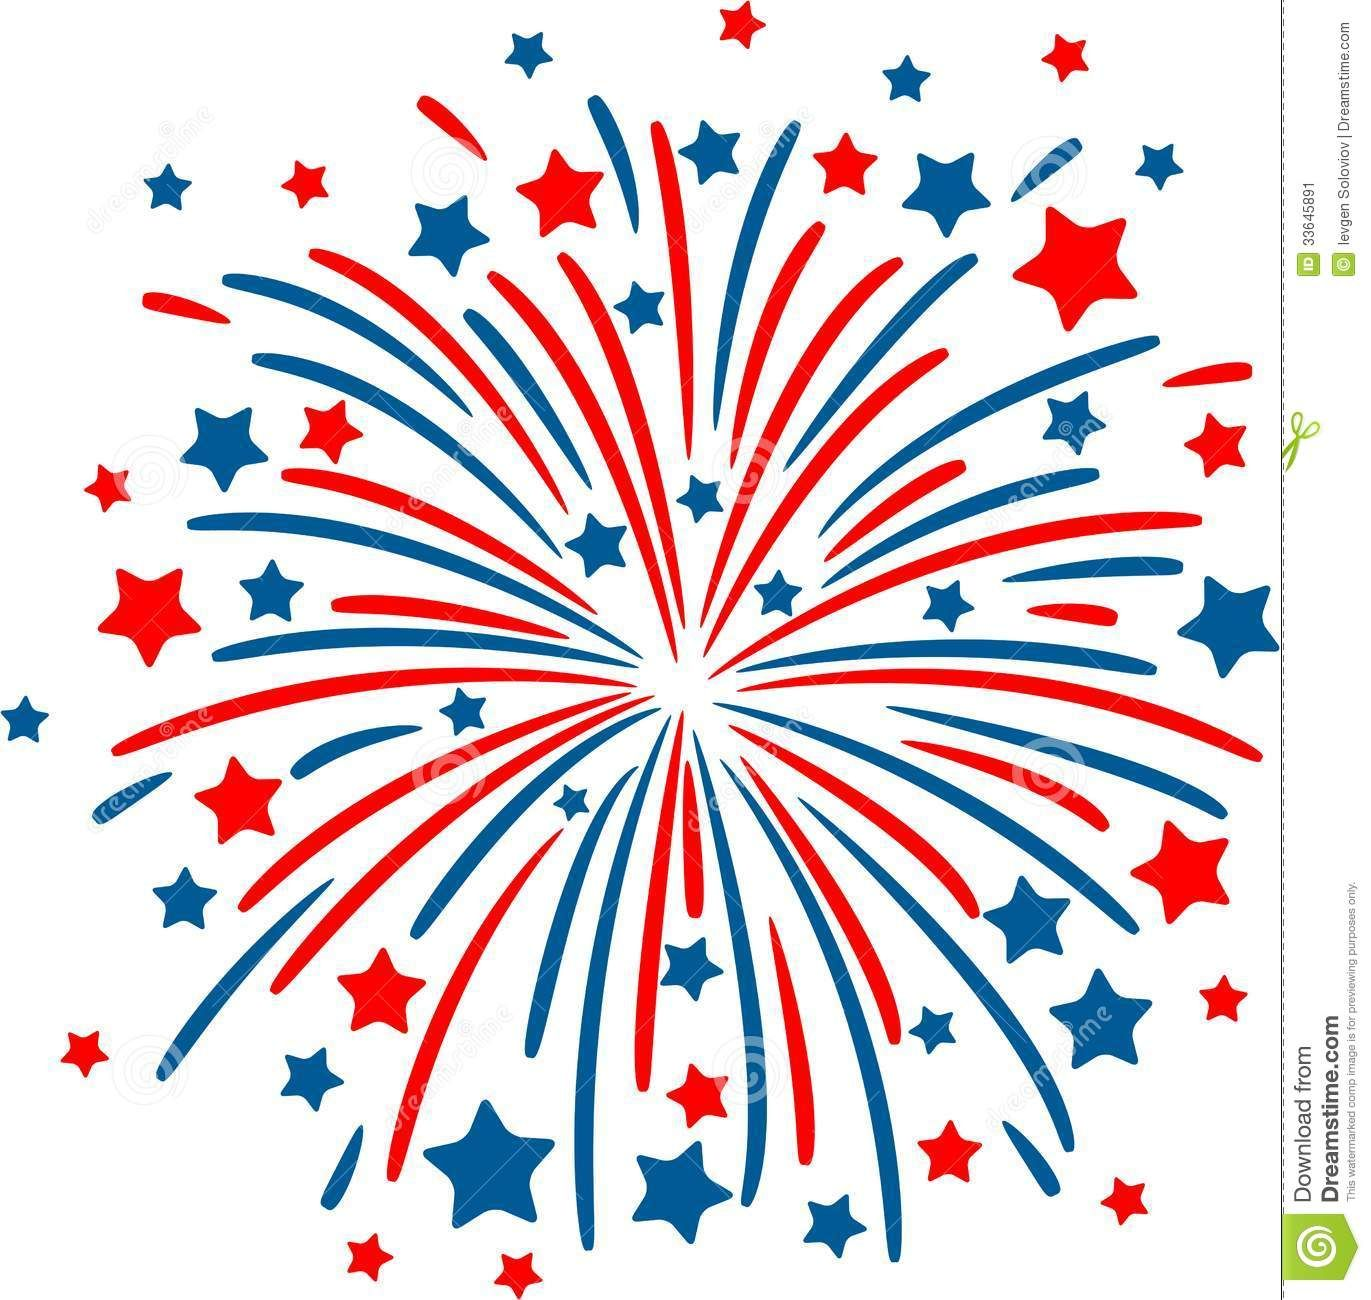 fireworks clipart no background clipart panda free clipart images [ 1371 x 1300 Pixel ]